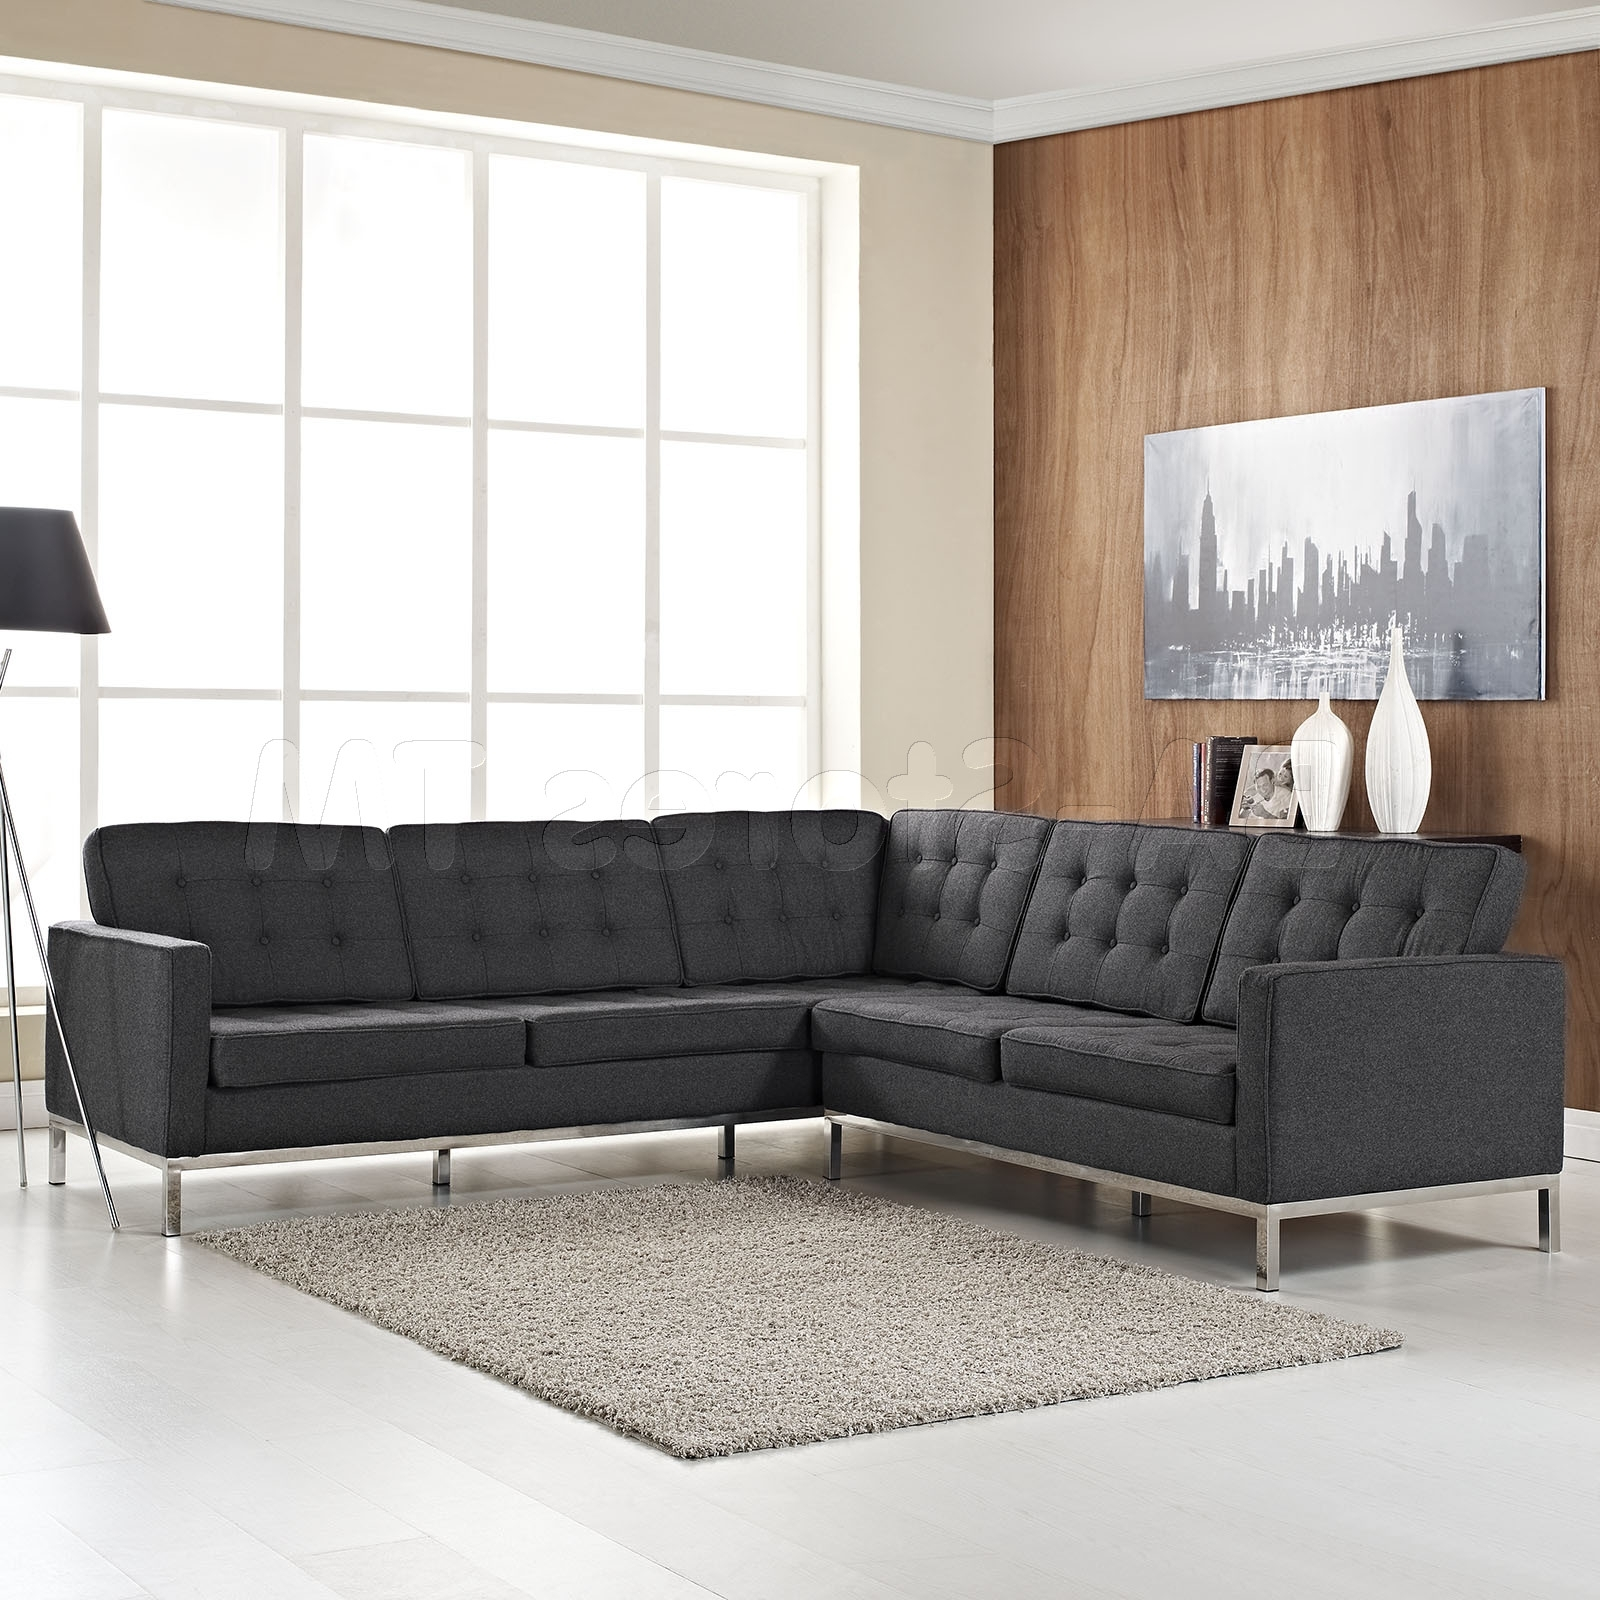 2018 Affordable Tufted Sofas Throughout Couches Design New In Impressive Reversible Sectional Sofa Chaise (View 1 of 20)